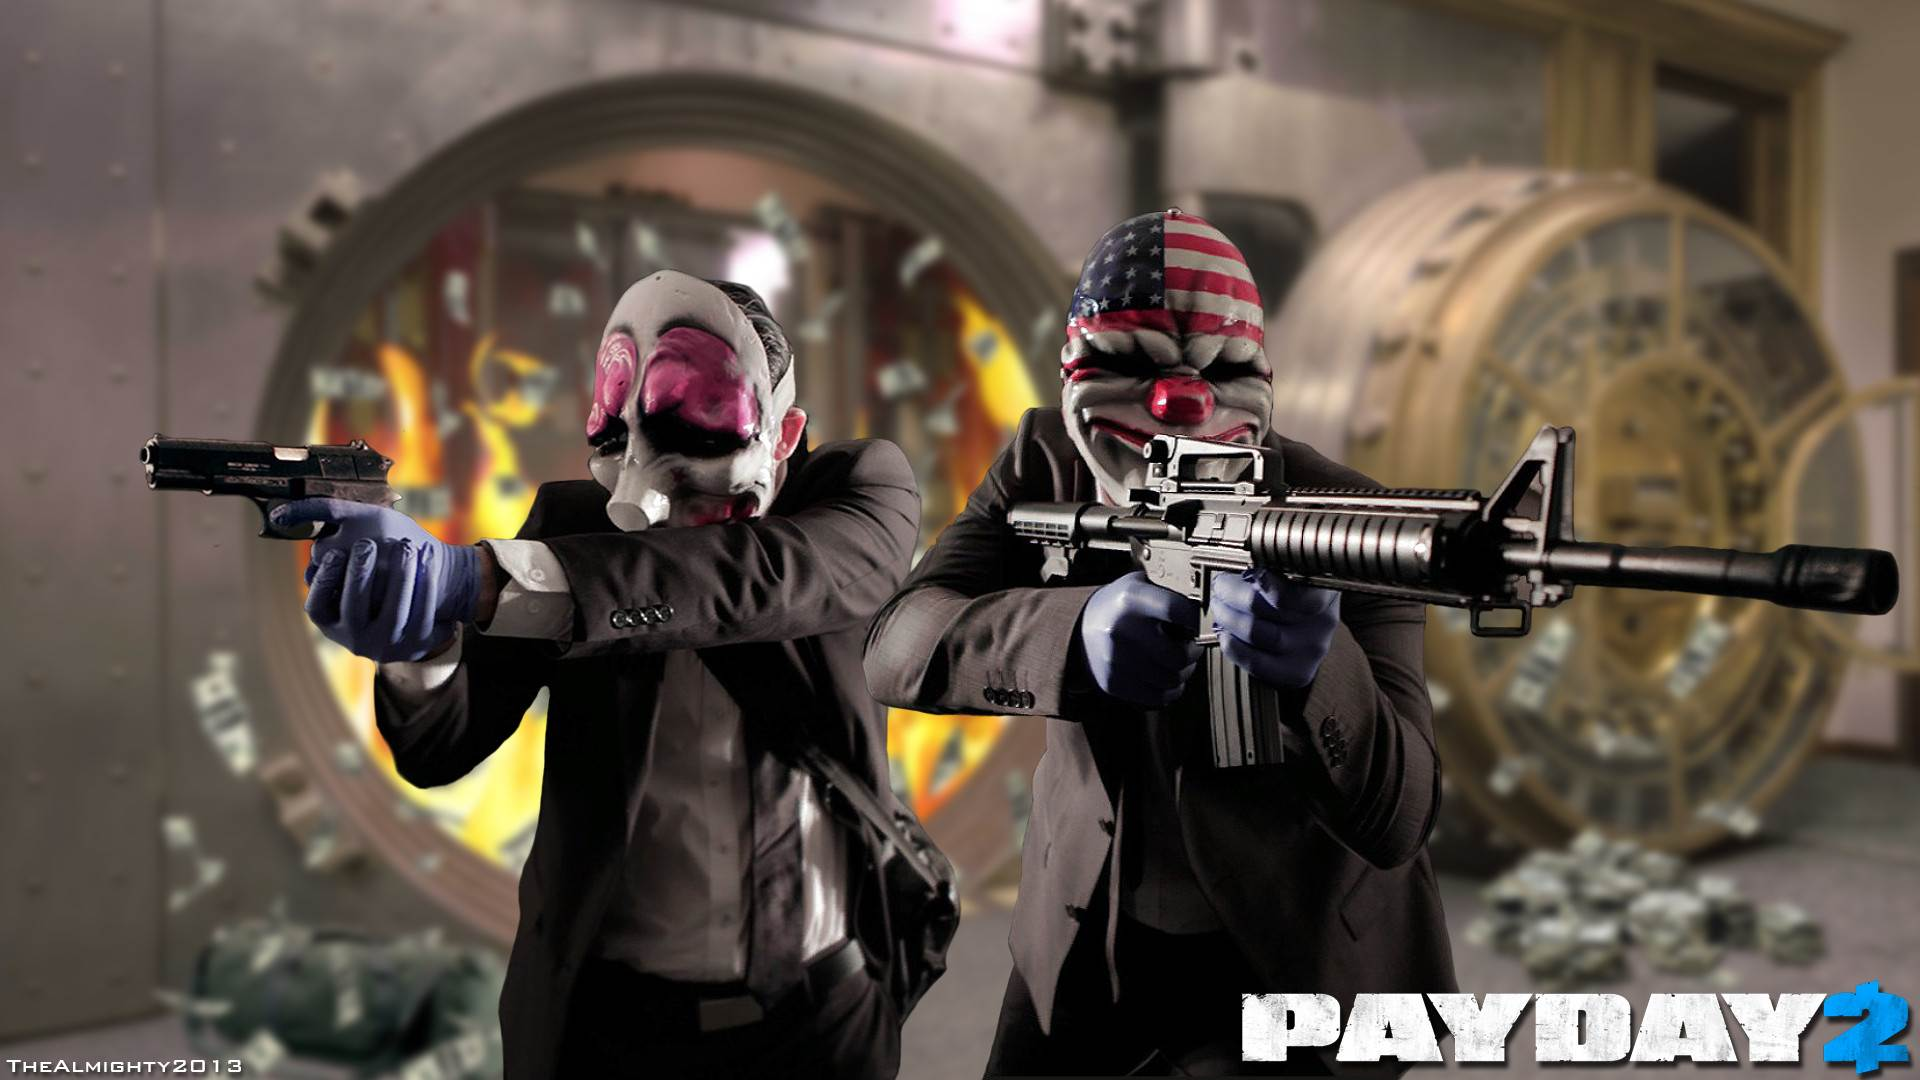 Payday  Hd Wallpaper